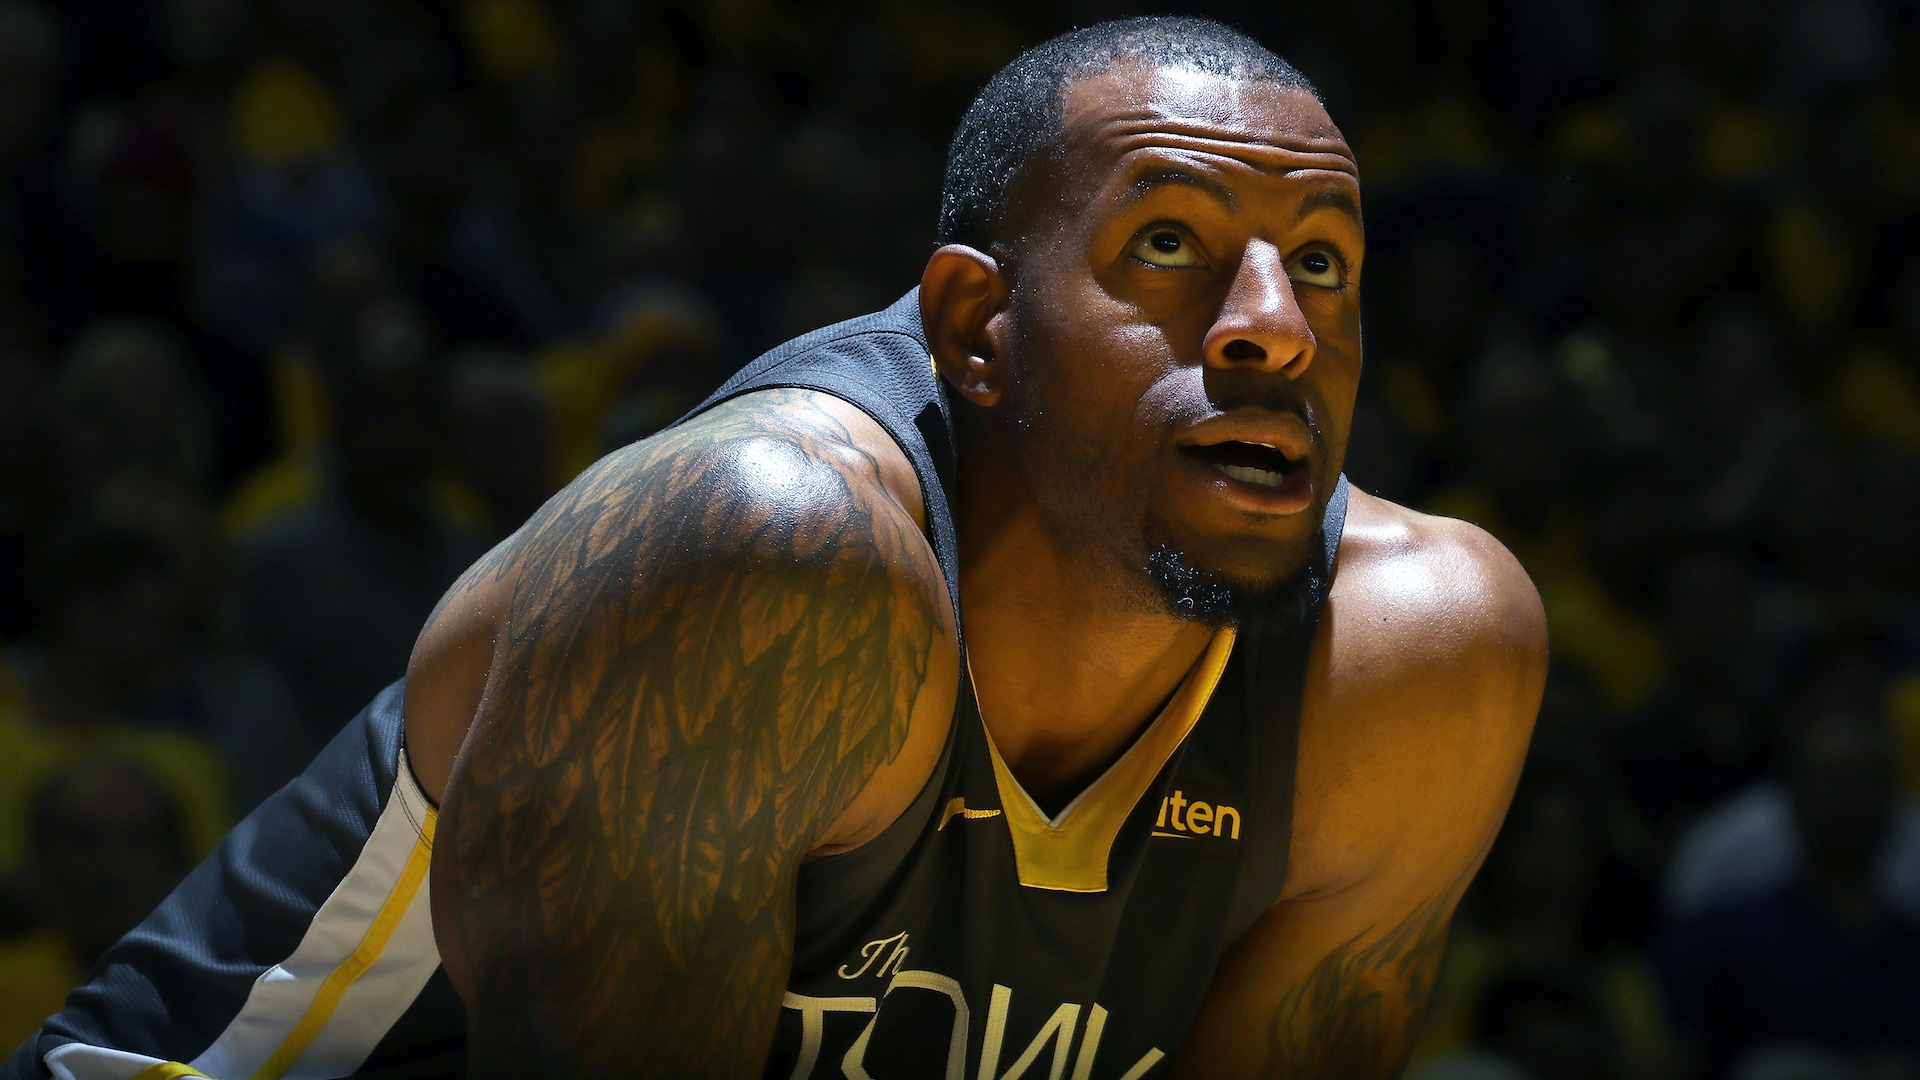 Heat add Andre Iguodala in 3-team deal